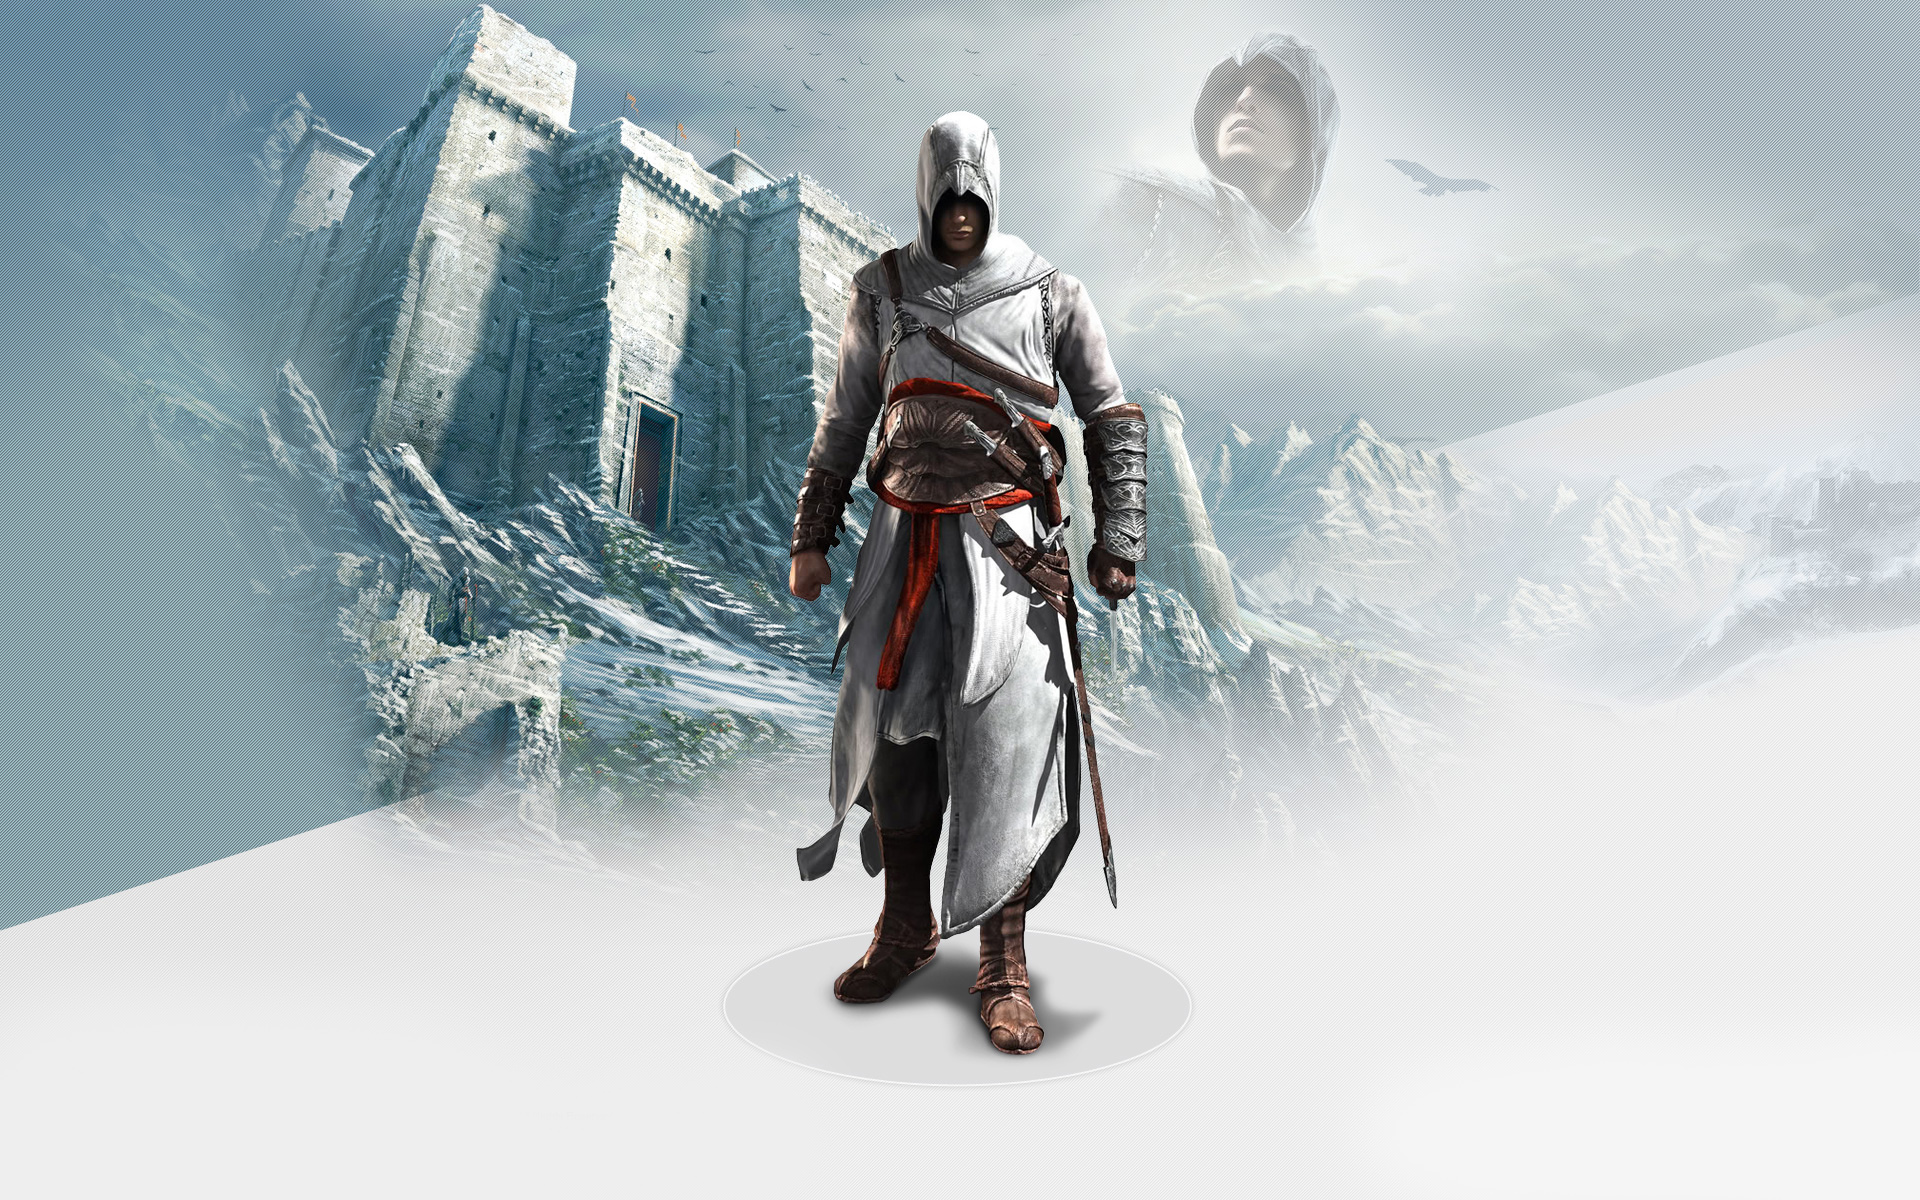 Altair 4k Wallpapers For Your Desktop Or Mobile Screen Free